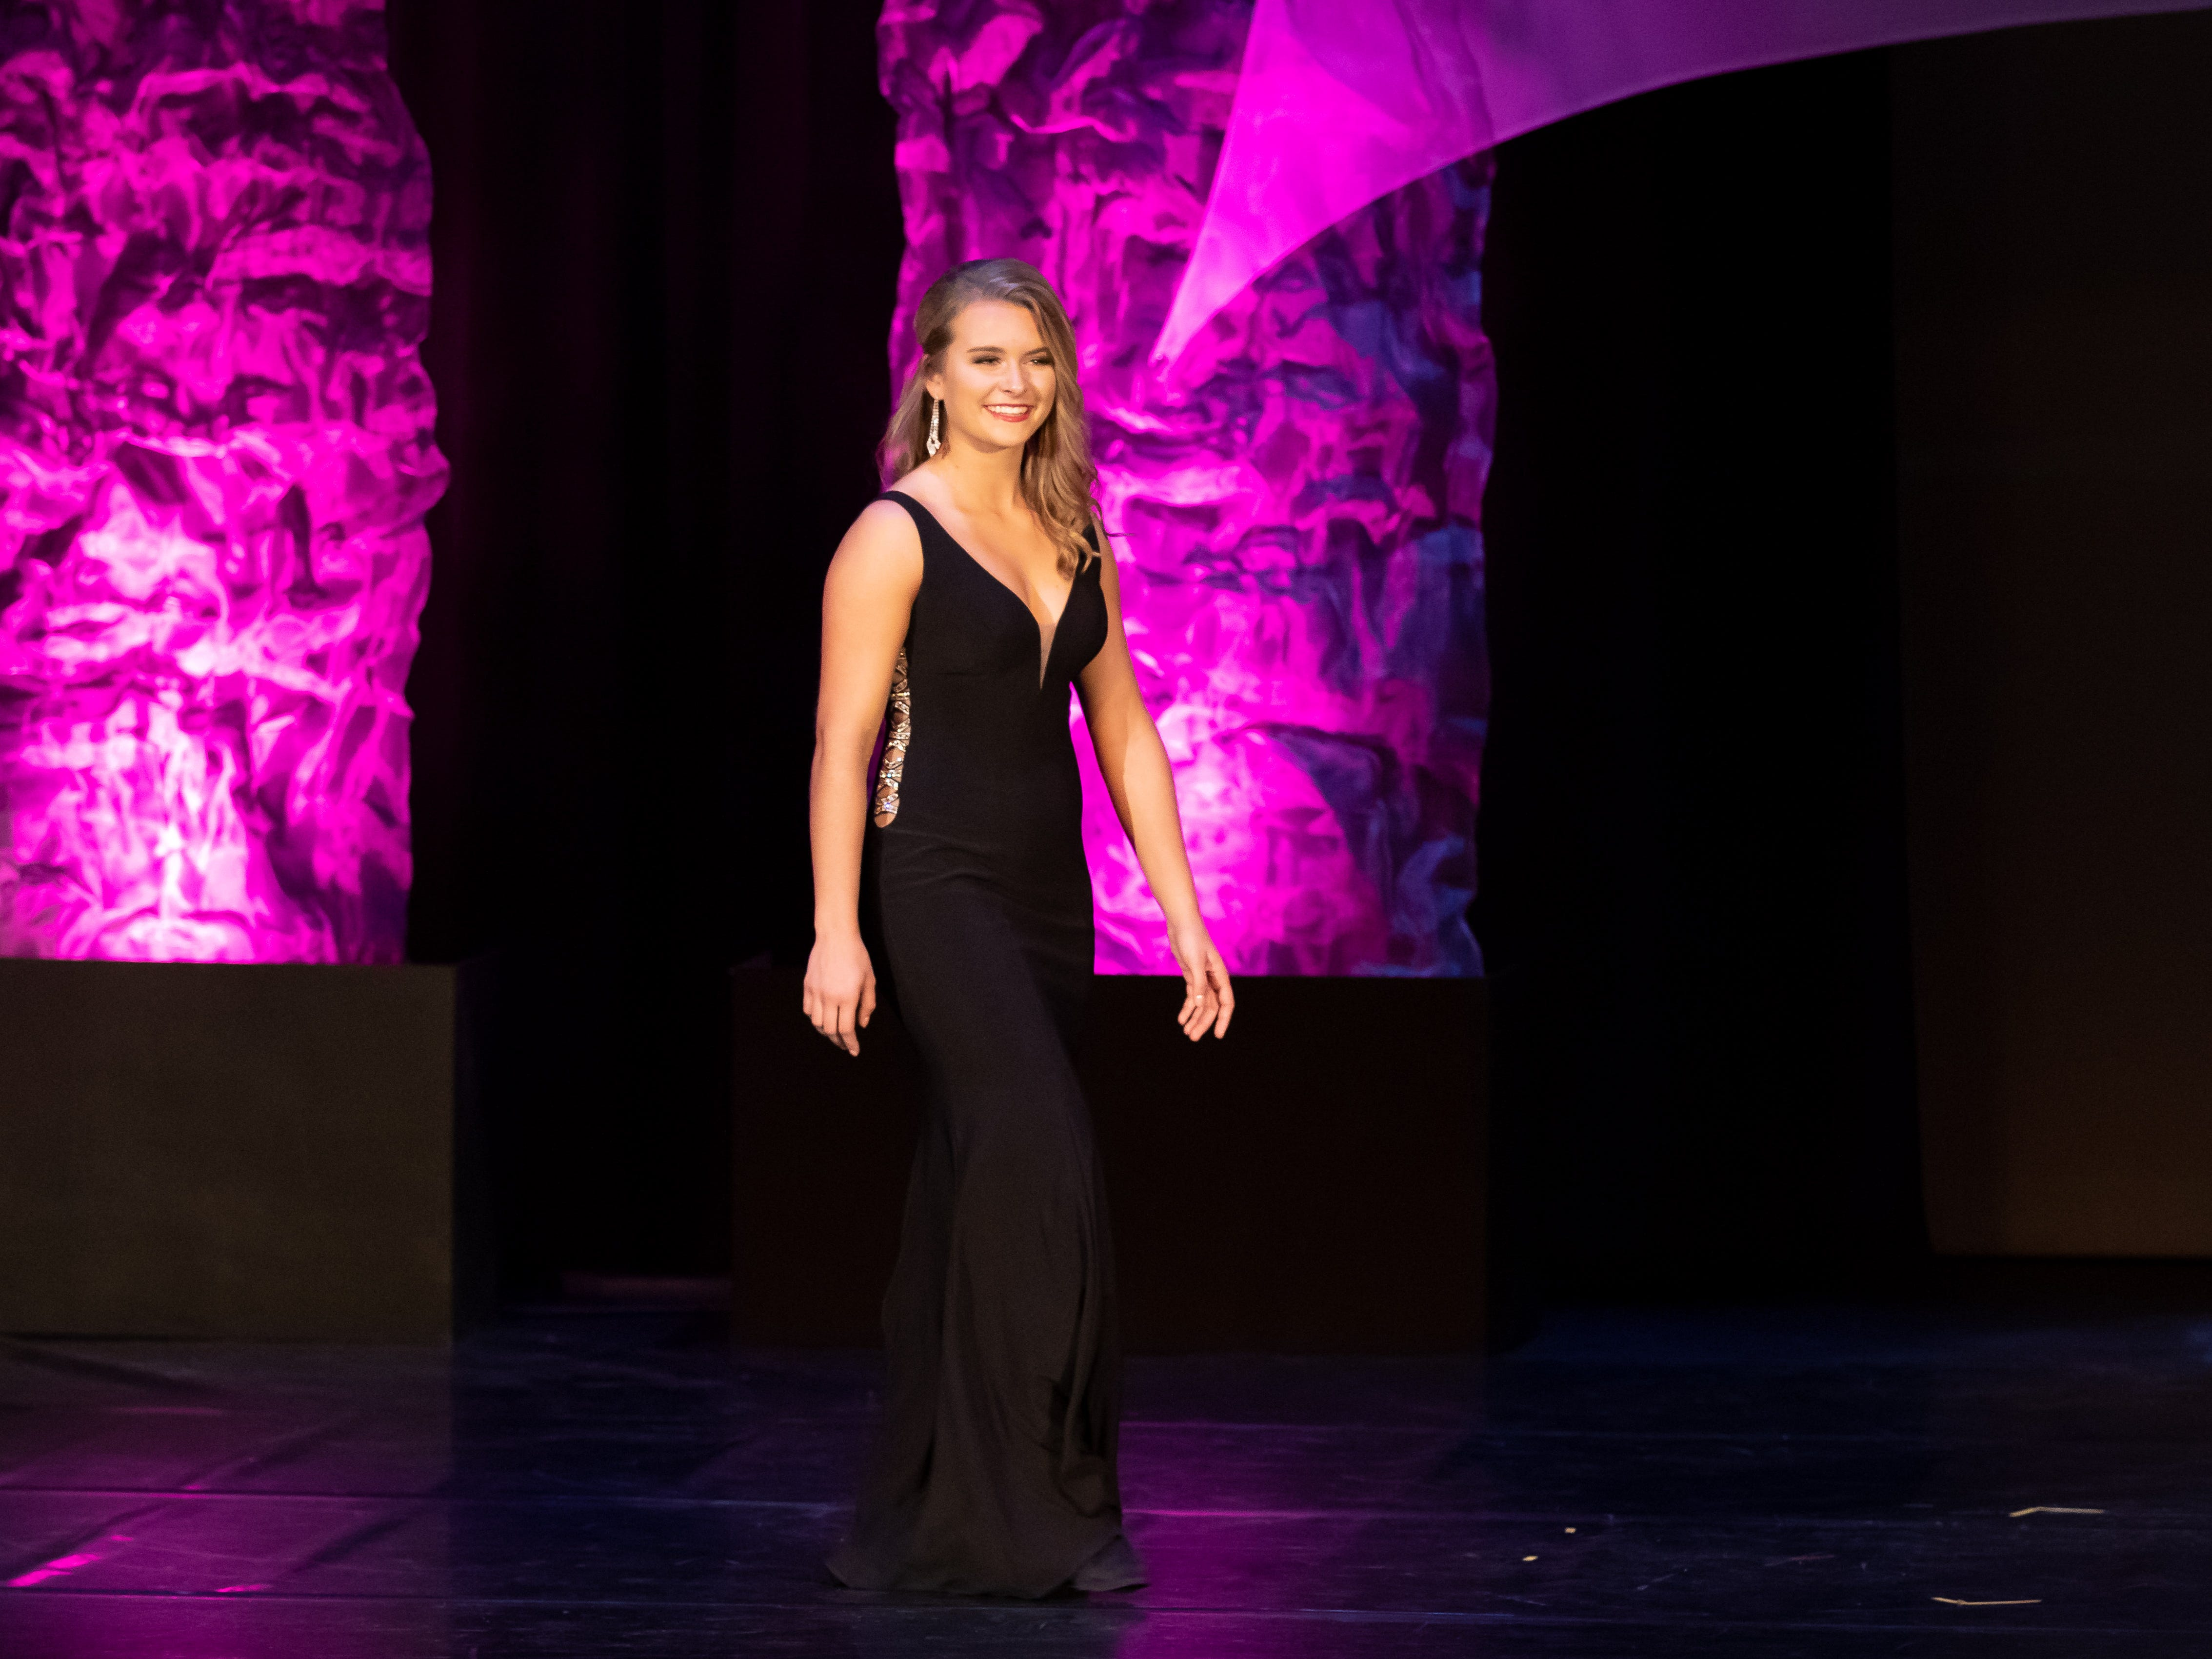 Ellie Schuerman competes in the Evening Wear competition during the 2019 Miss Wisconsin Rapids Area Scholarship Pageant on Saturday, Oct. 27, 2018, at the Performing Arts Center of Wisconsin Rapids.